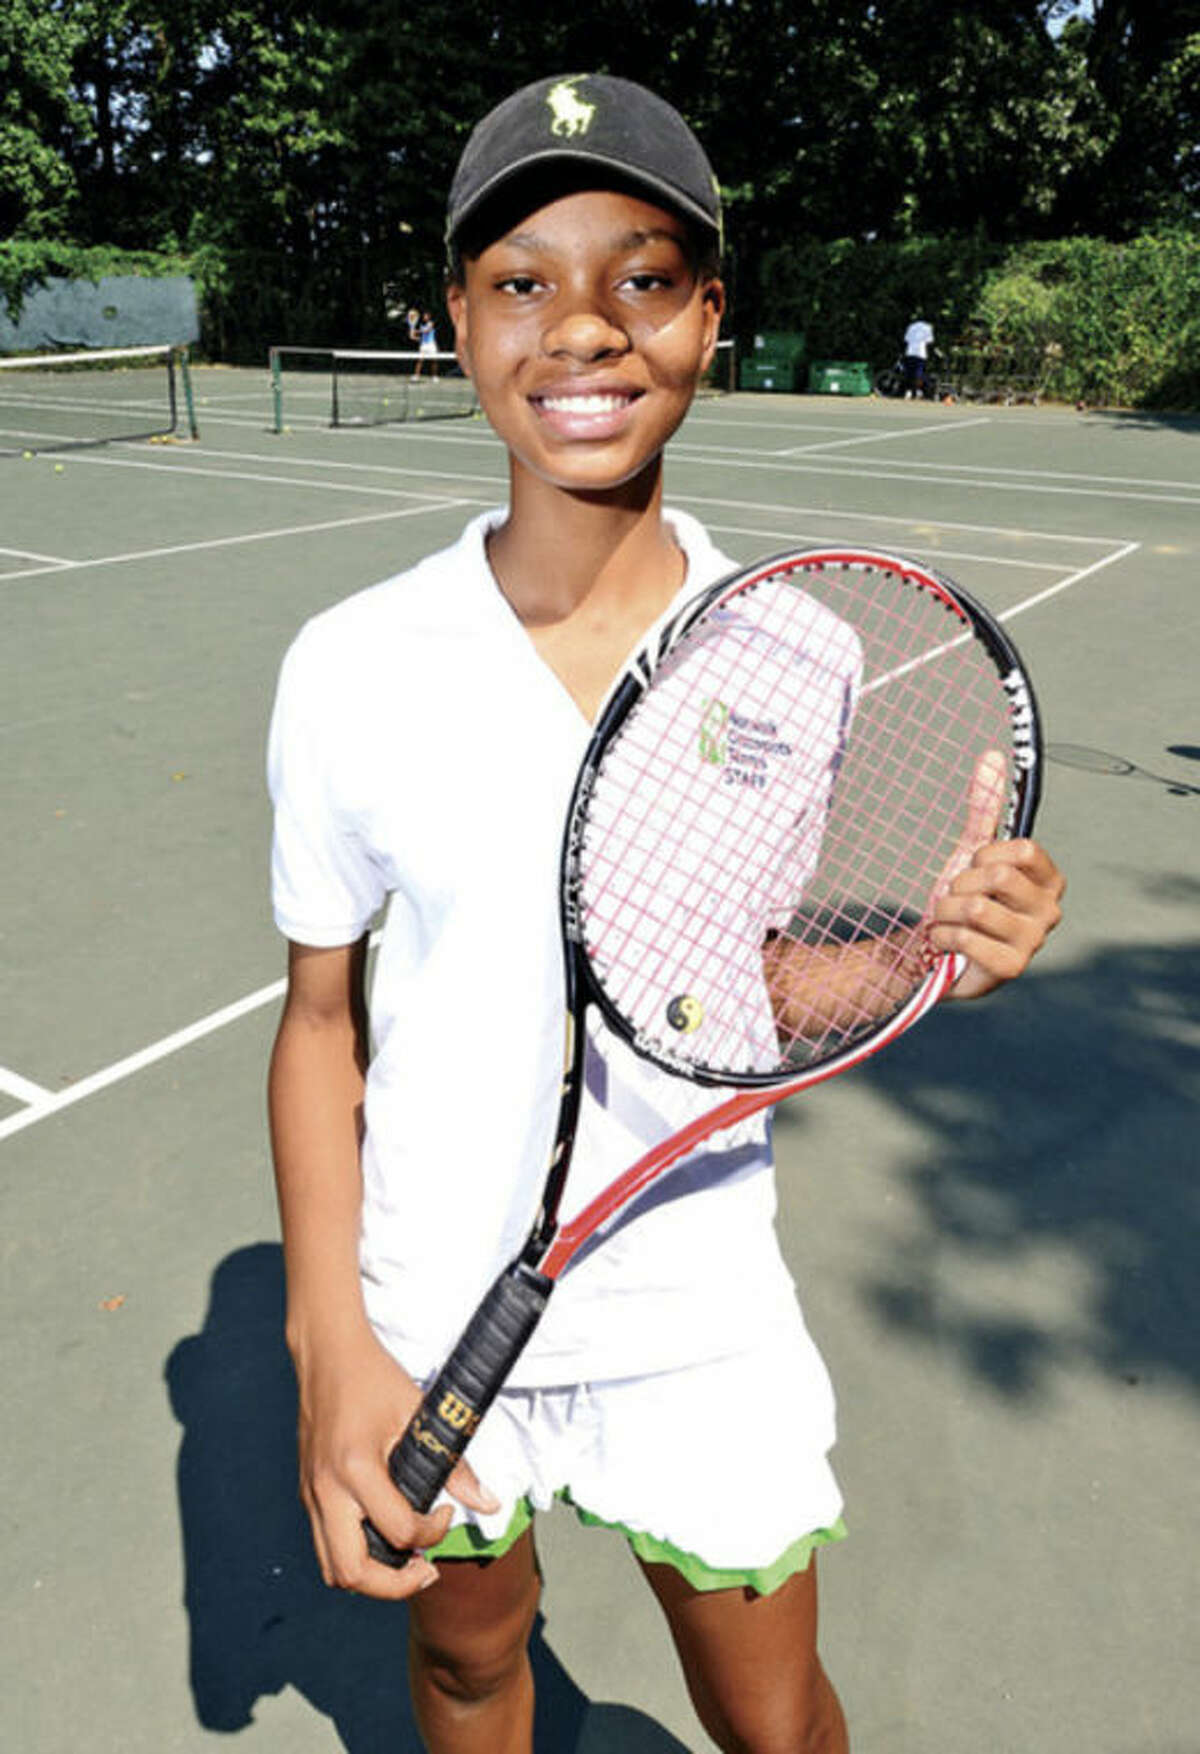 Sehvrine Lezeau has been involved with the Norwalk Grassroots Tennis program for five years and last spring became a varsity starter for the Brien McMahon girls tennis team. Off the court, the local youth program has changed her life even more. @Cutline Byline:Hour photo/ Erik Trautmann